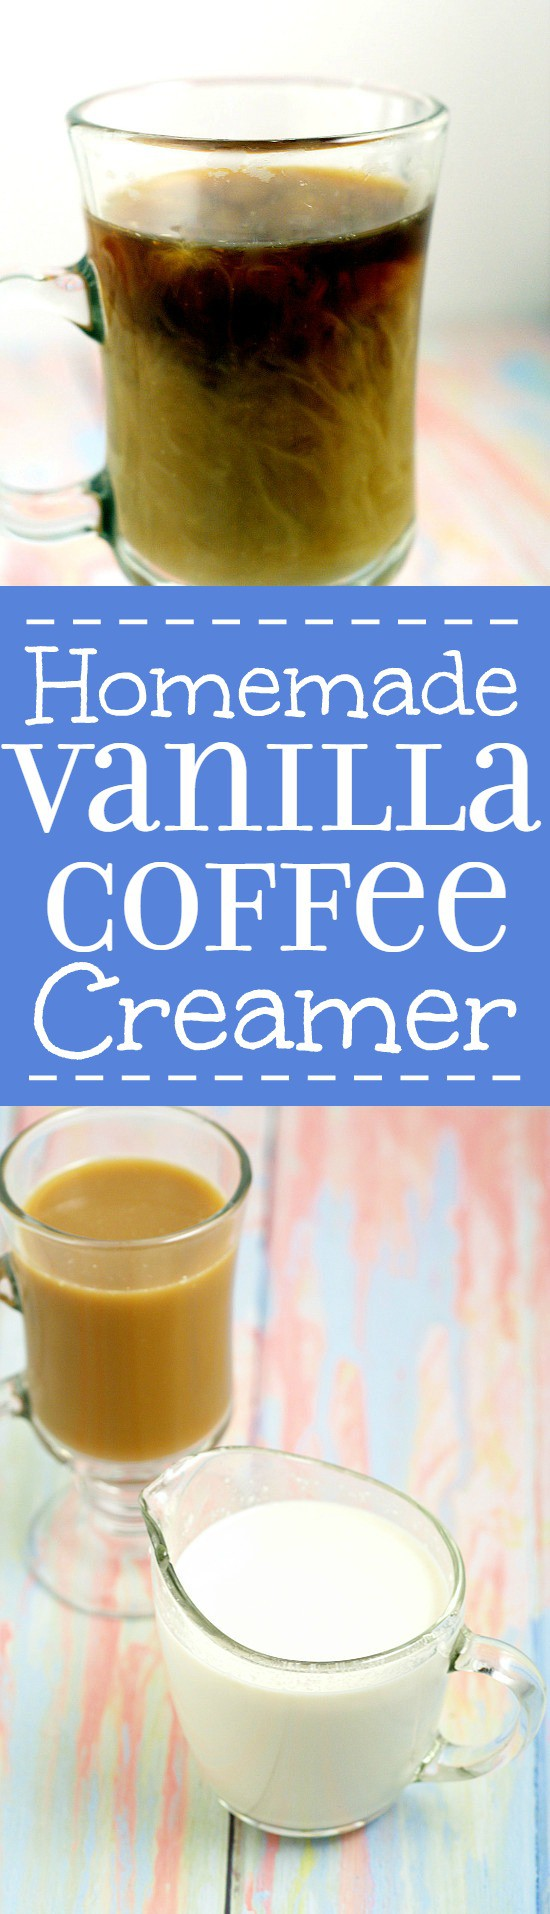 Easy and classic Homemade Vanilla Creamer recipe is frugal and delicious way to make your morning coffee a special treat. Easy to make with just 4 ingredients! Perfect! So easy to make and tastes just like store bought coffee creamer!